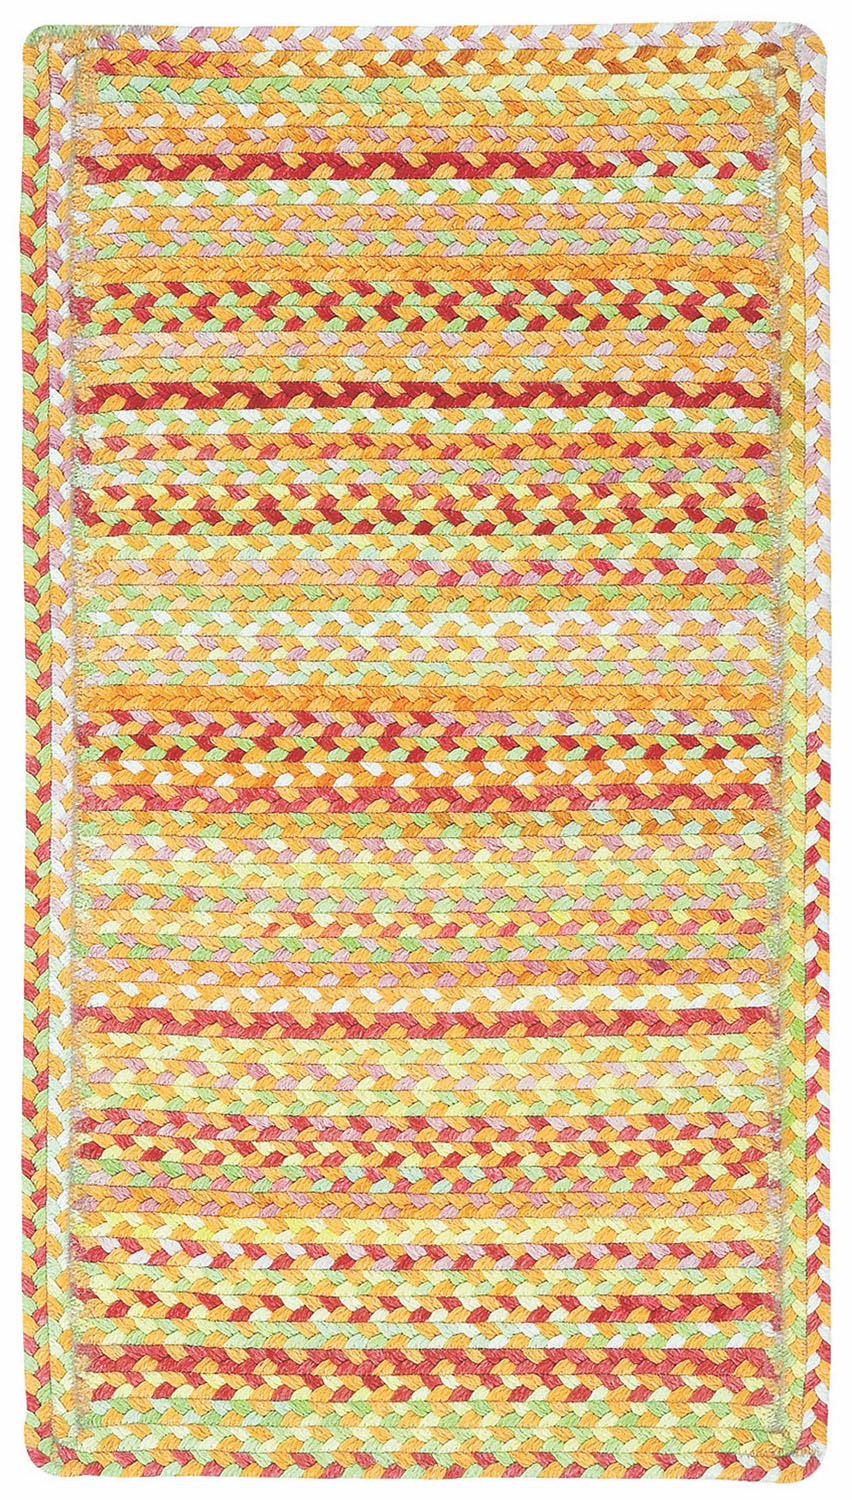 Hand-Braided Cinnamon Rug